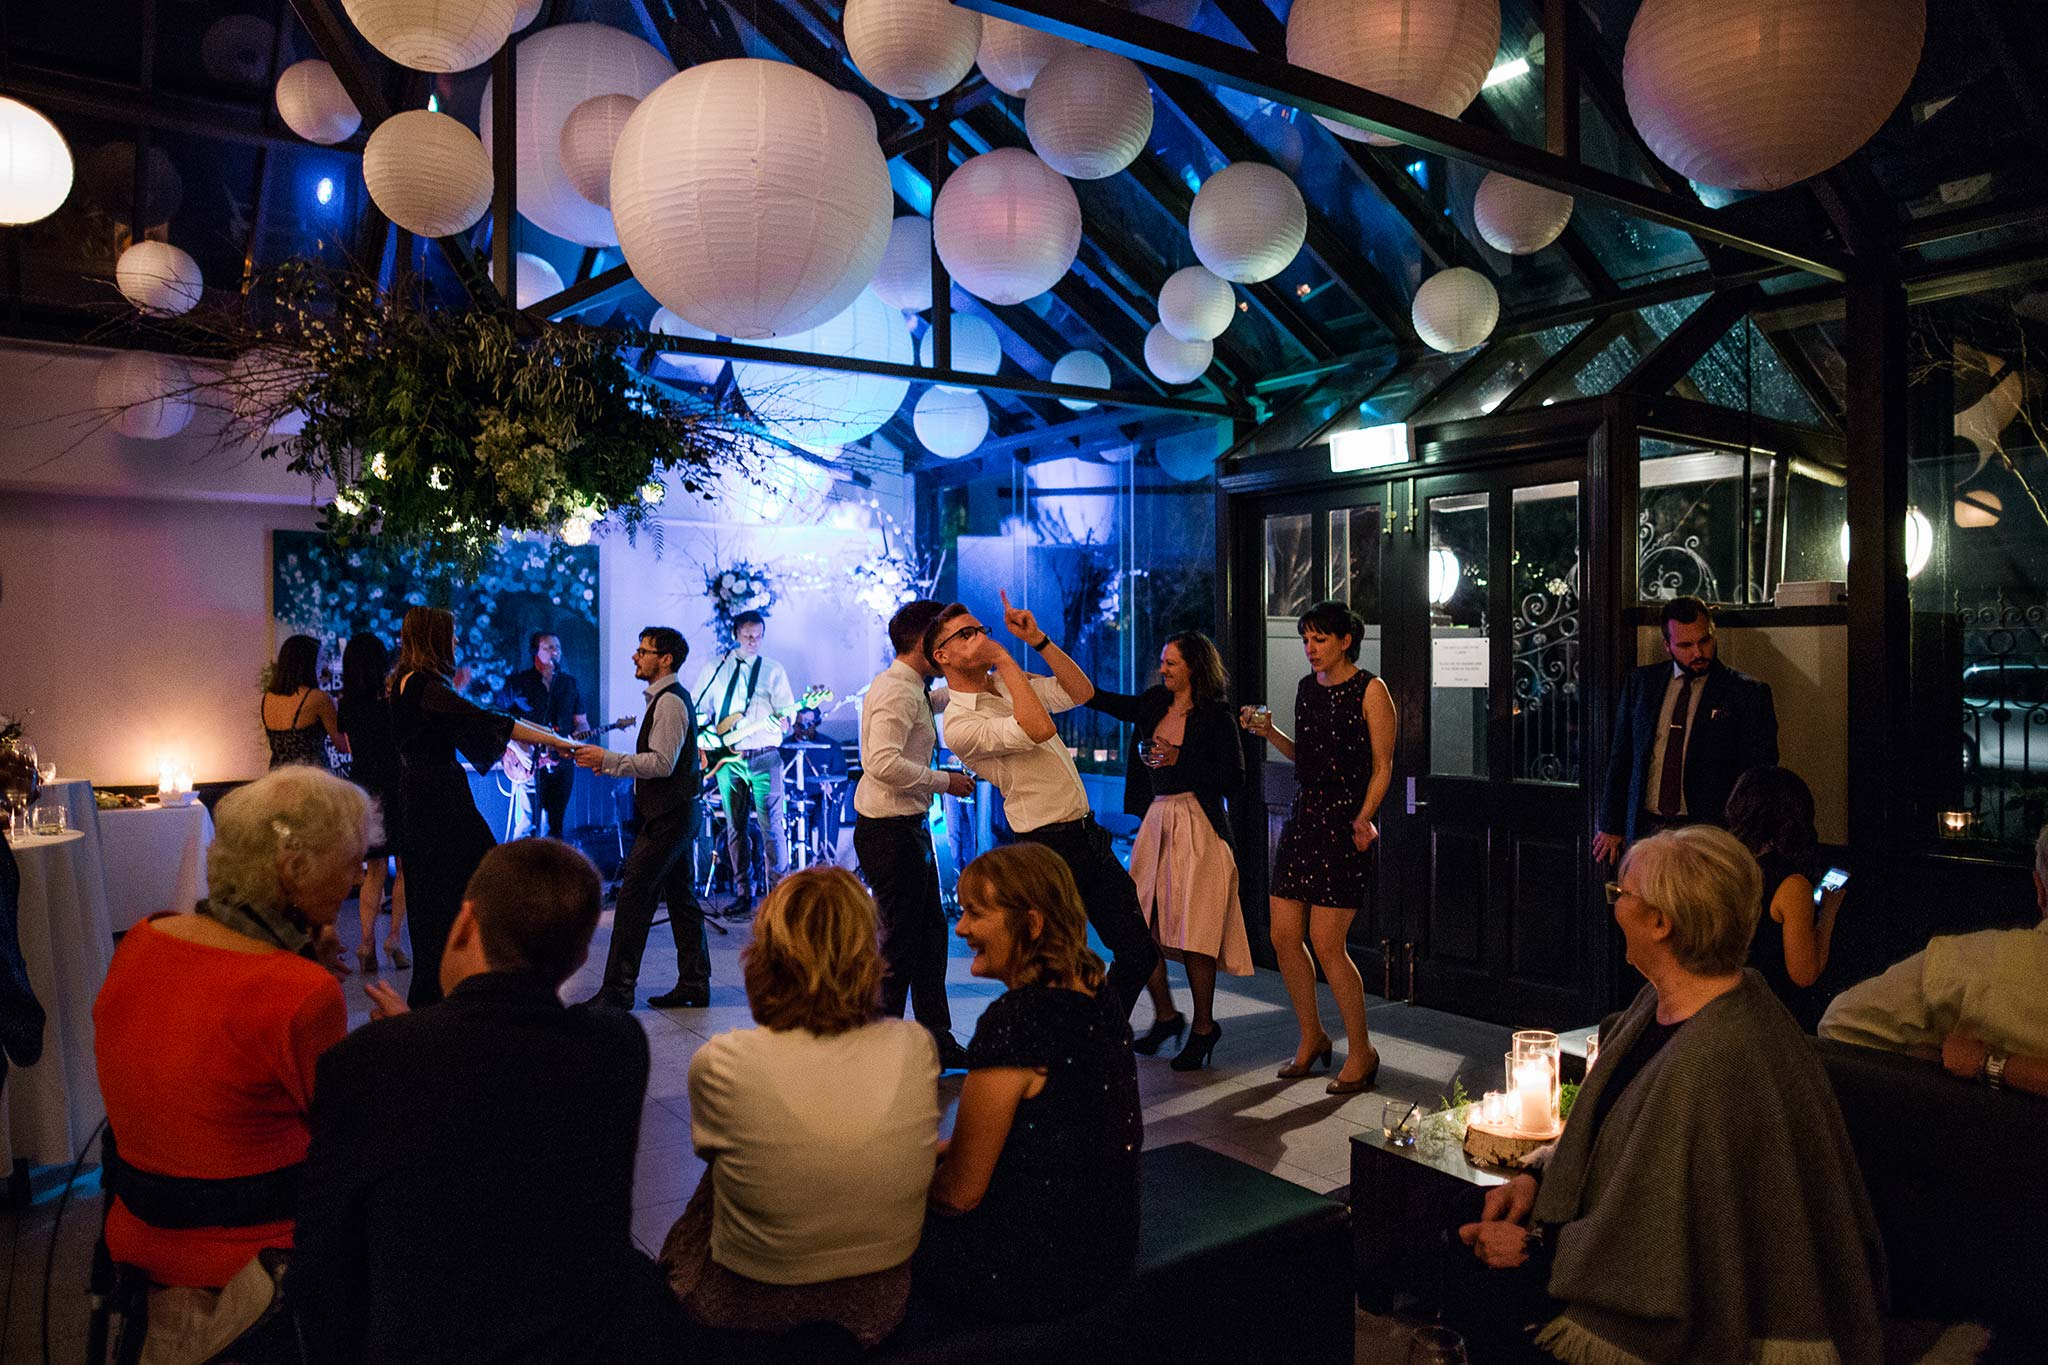 melbourne-fitzroy-st-andrews-conservatory-pumphouse-wedding-reception-party